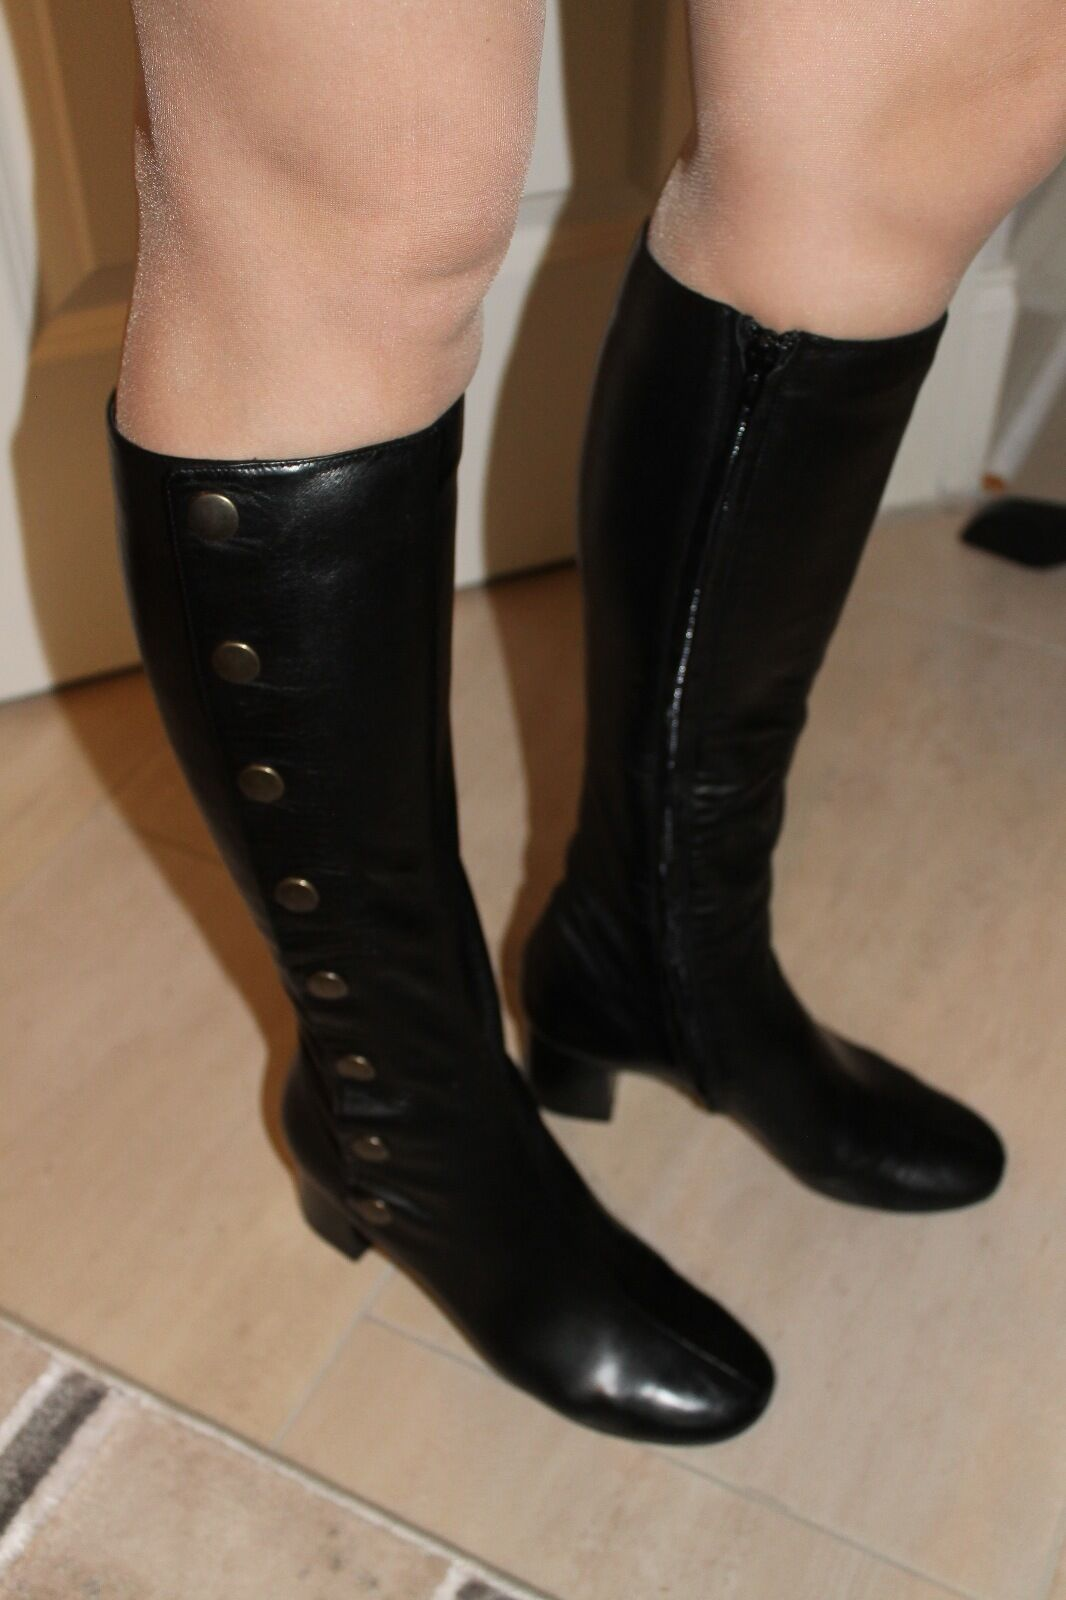 Chloe Brass Snap Button Black Leather Round Toe Knee HIgh Boots 36.5